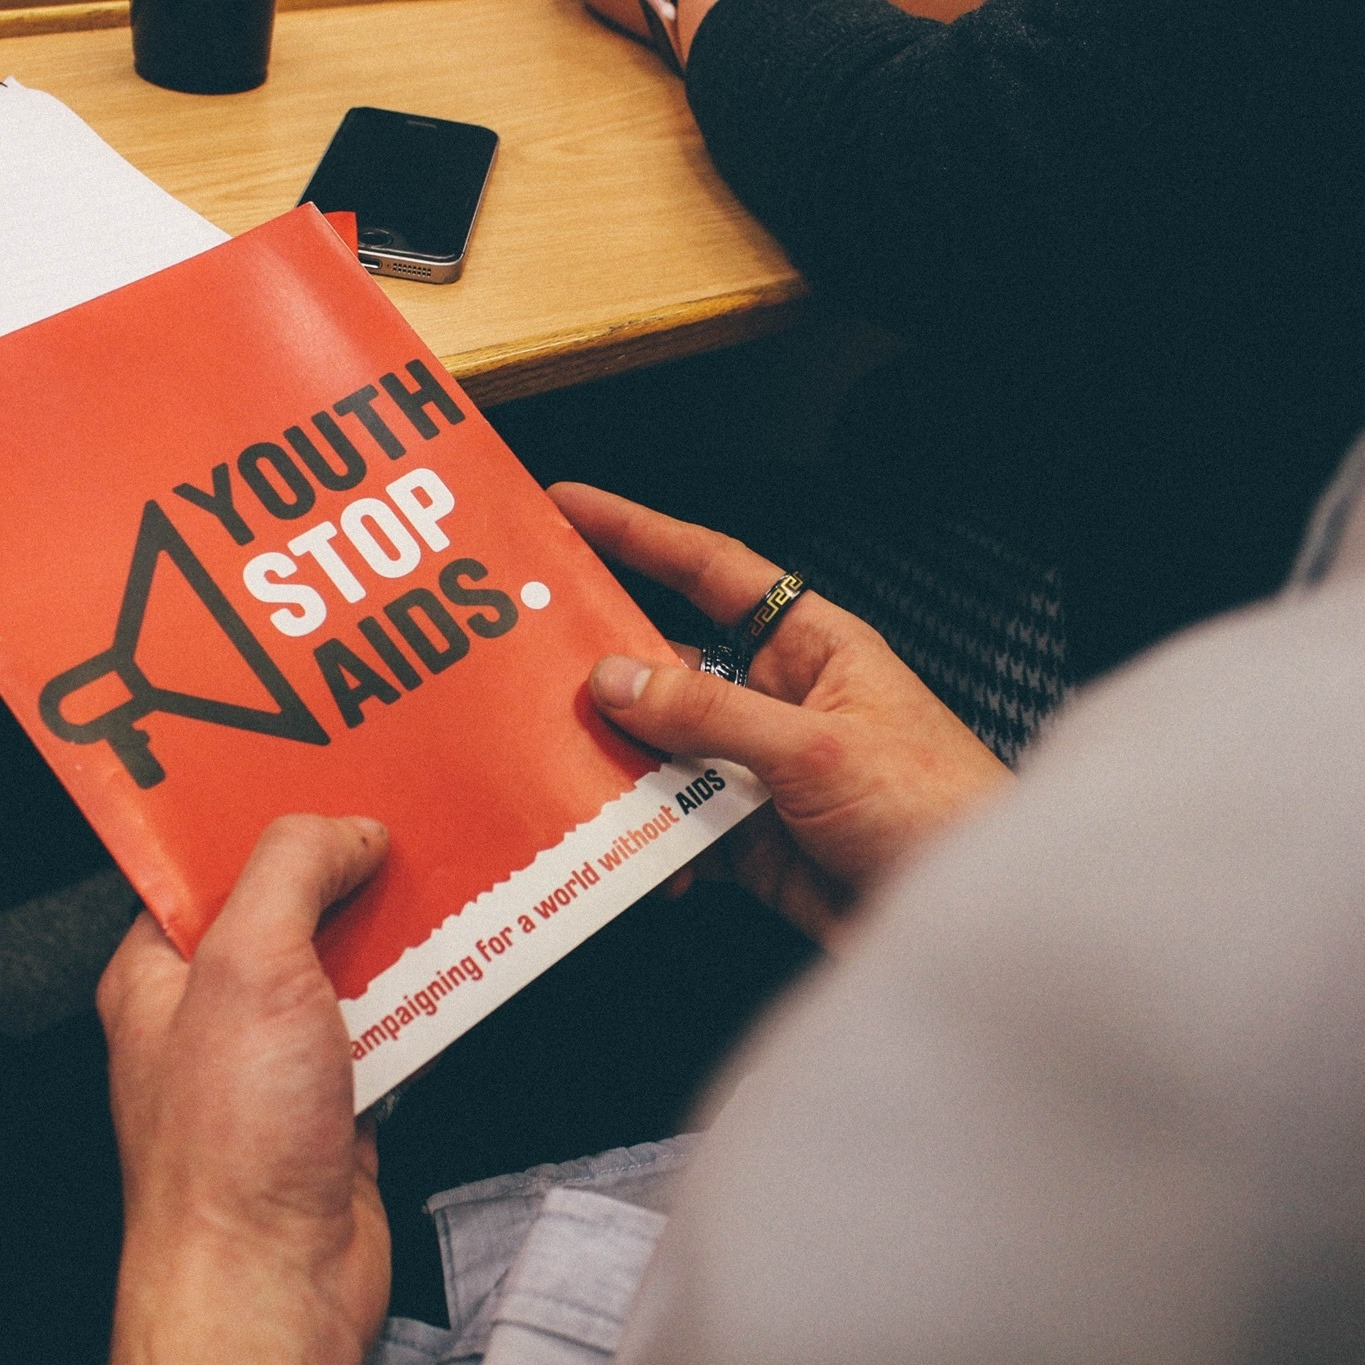 A person reading a brochure about Youth Stop Aids at a desk